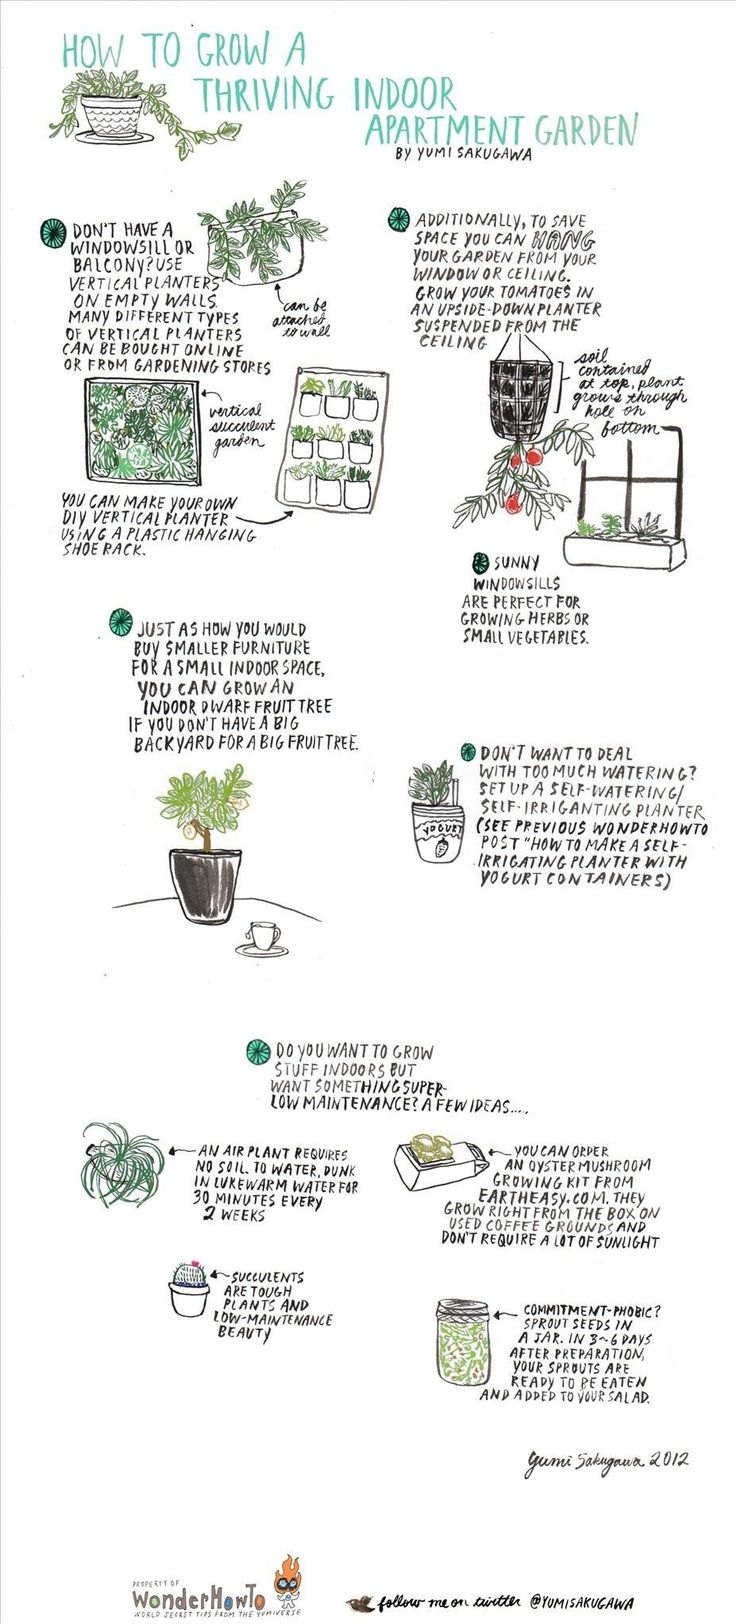 Doing this: How to Grow a Thriving Indoor Apartment Garden